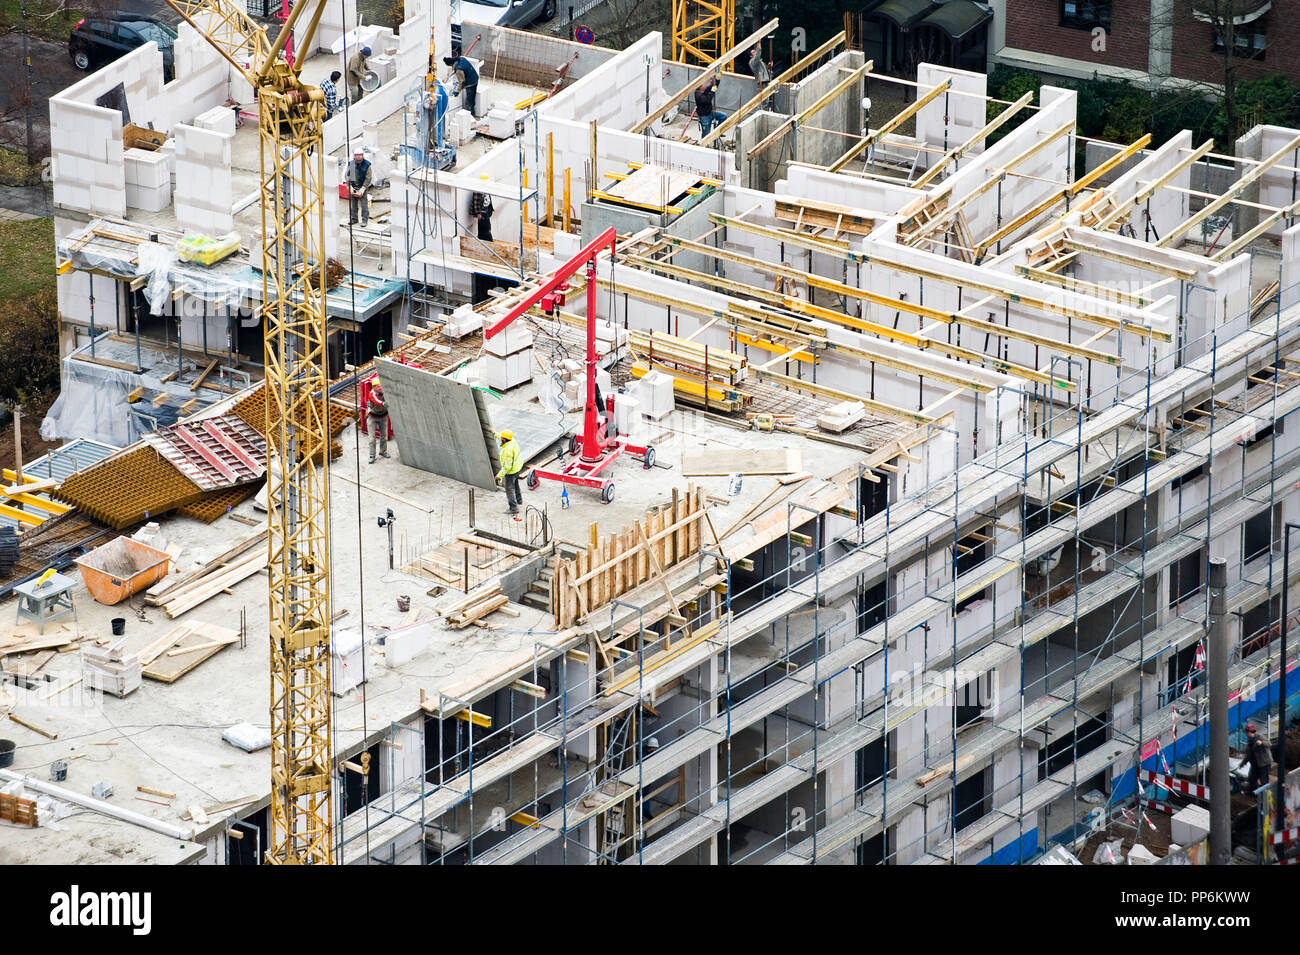 Construction site of big building seen from drone view - Stock Image